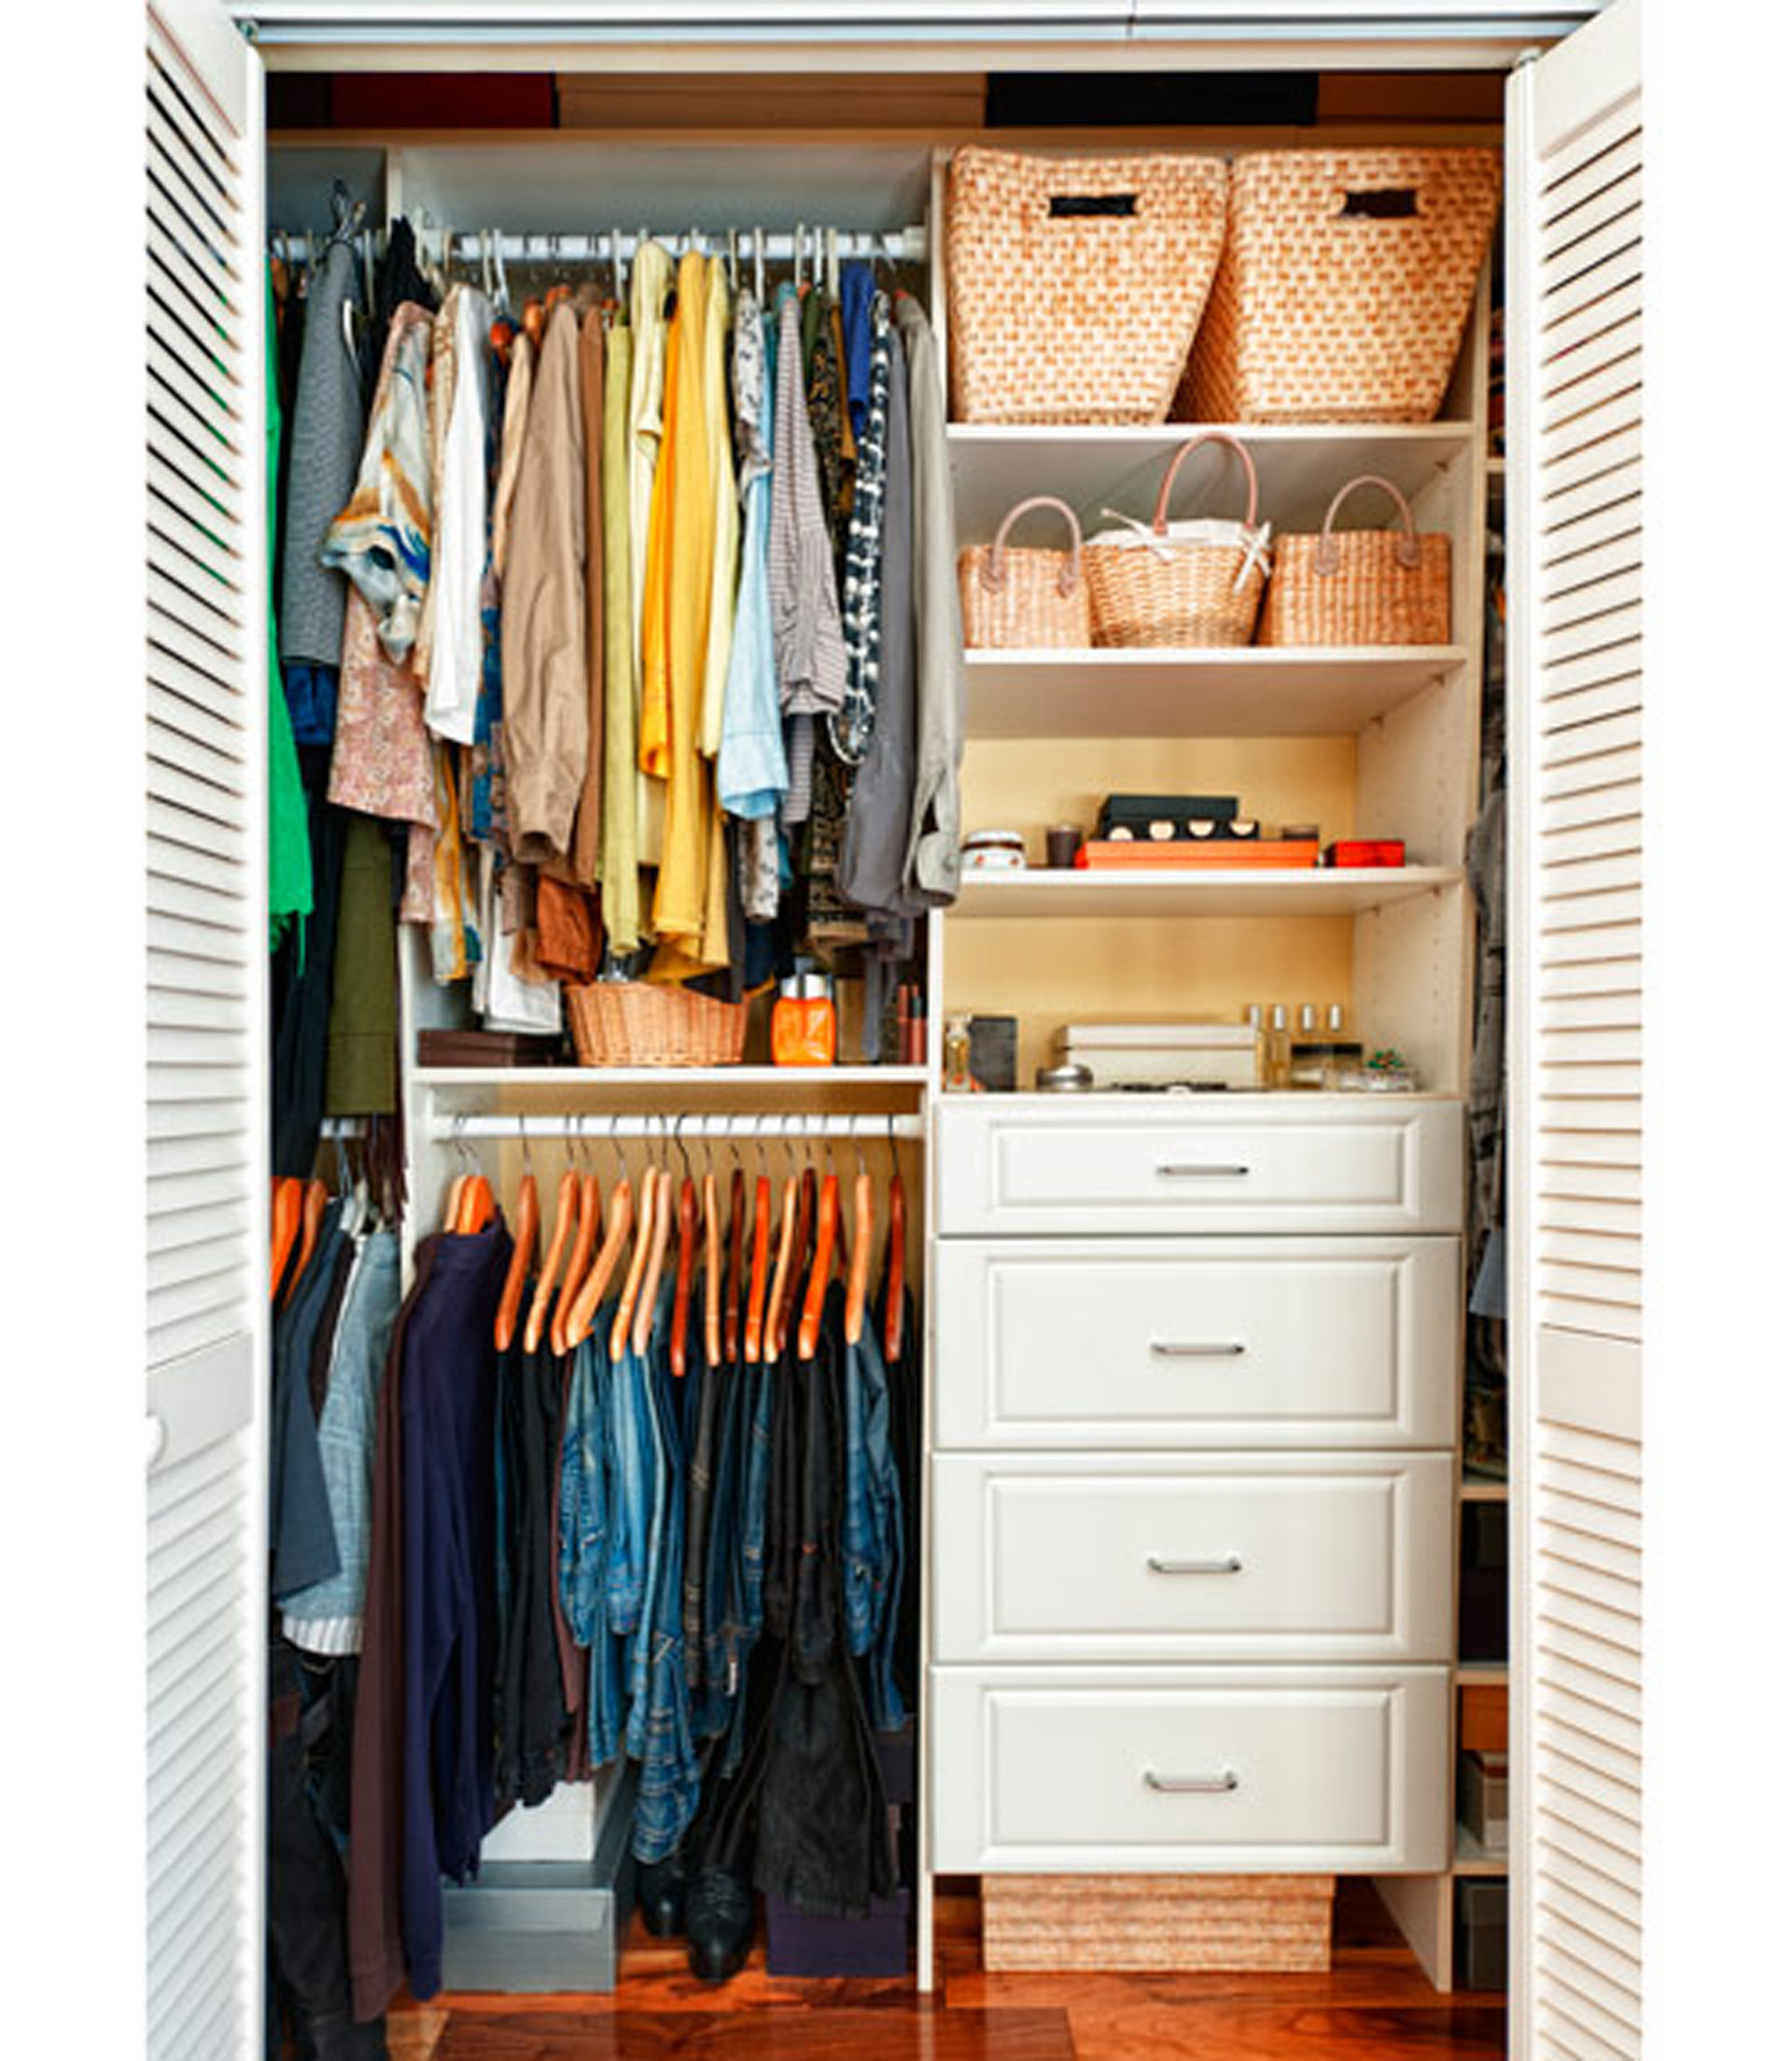 Solutions for closet solutions and organization Best wardrobe storage solutions